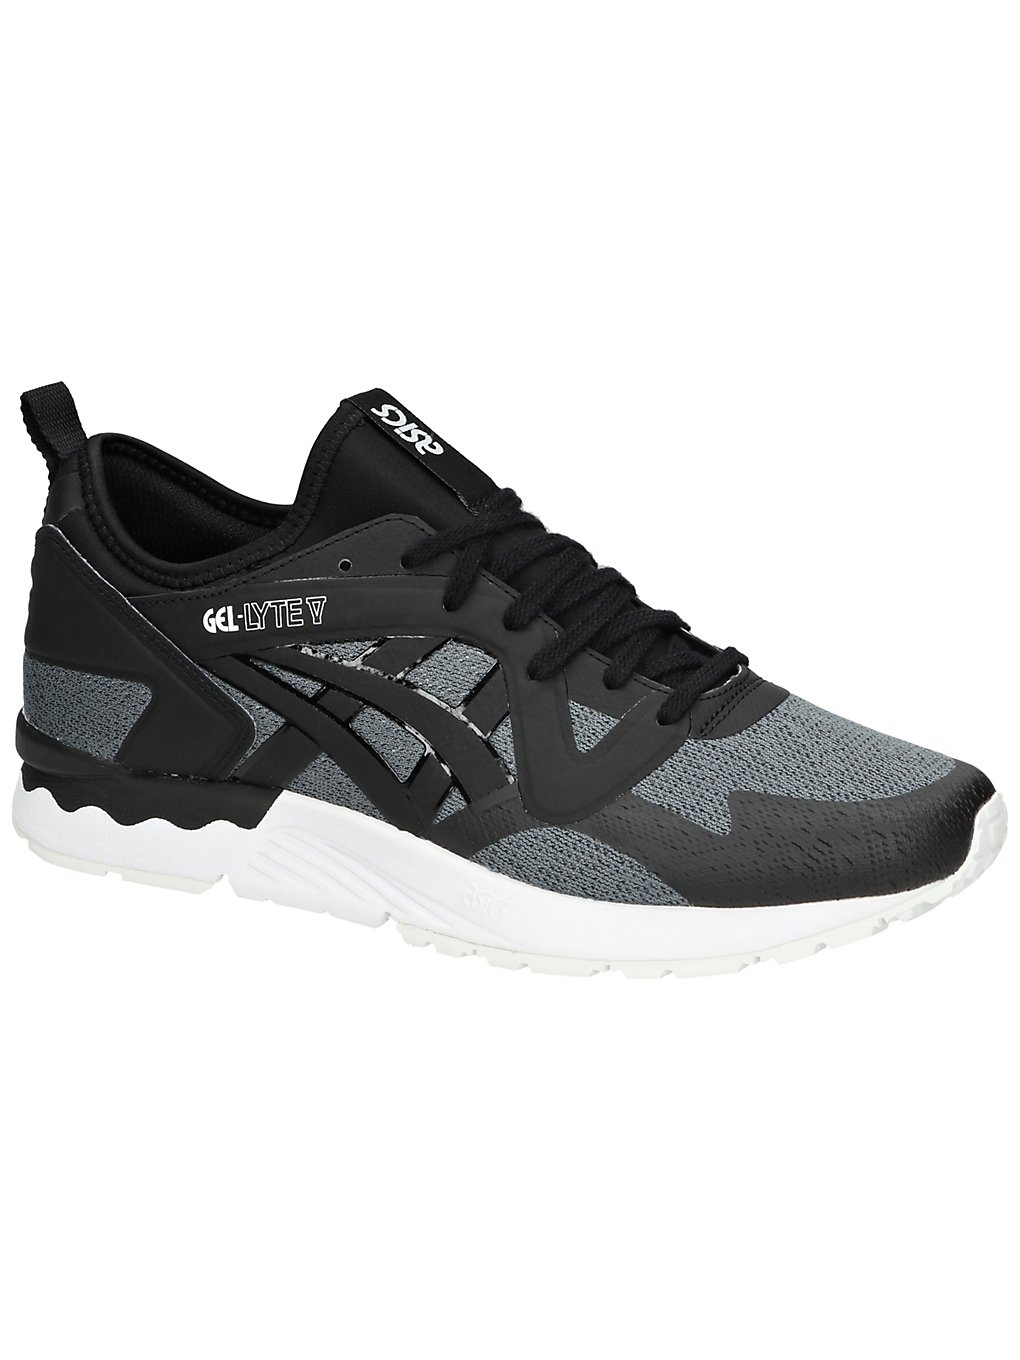 Image of Asics Gel-Lyte V NS Sneakers